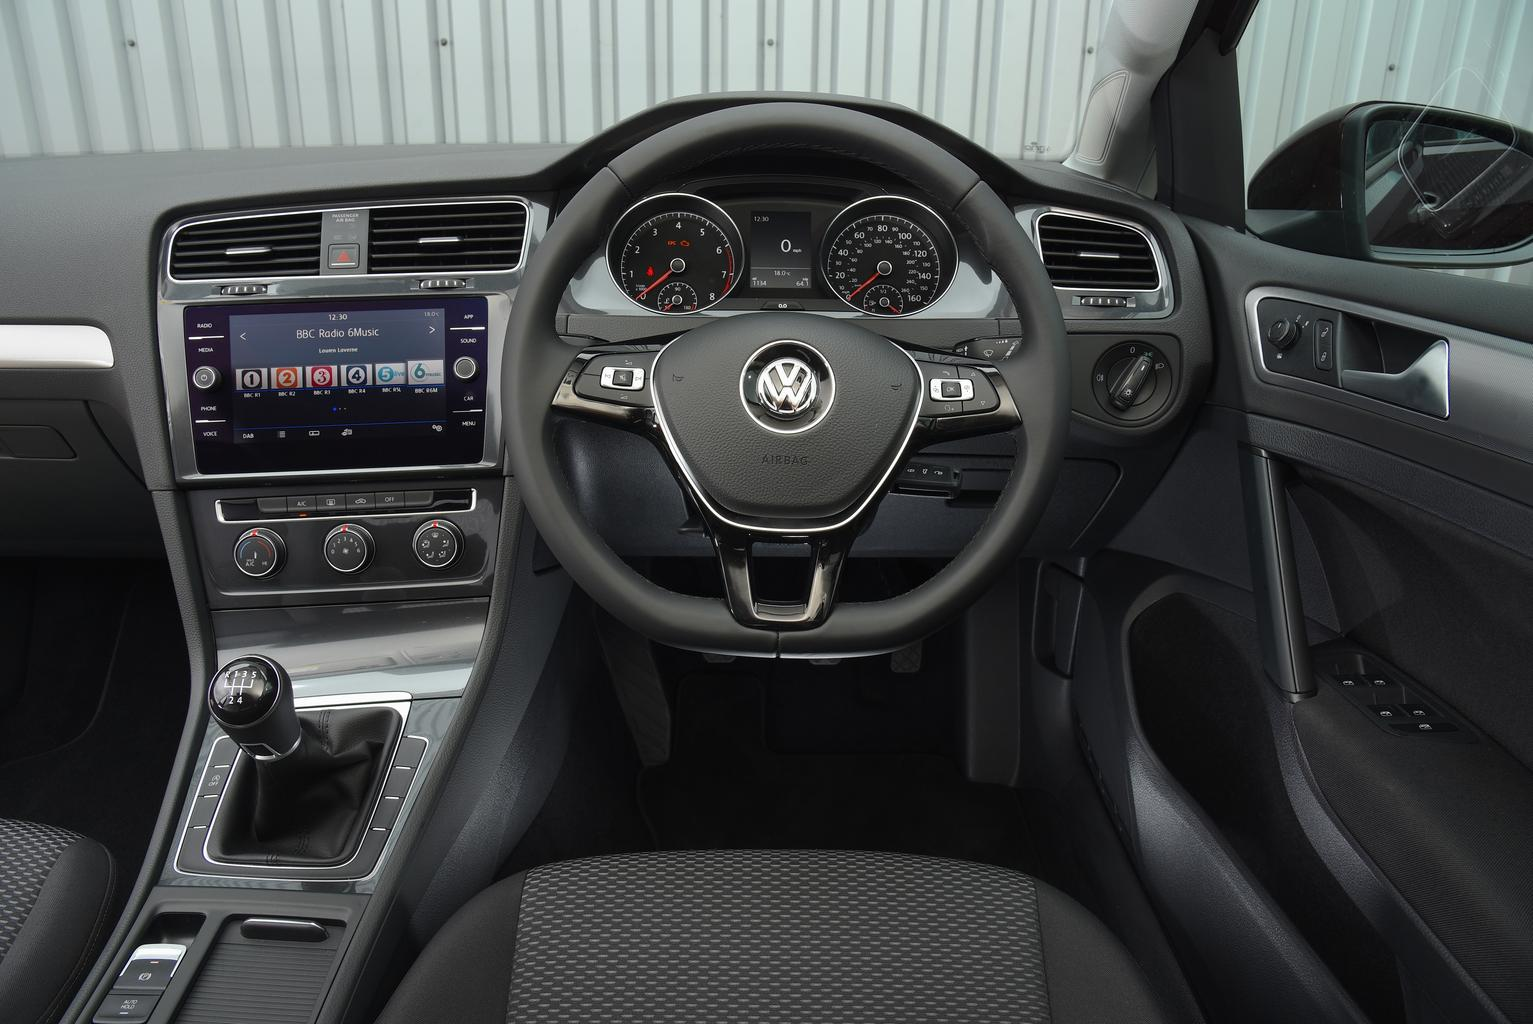 2017 Volkswagen Golf 1.0 TSI 85 review – price, specs and release date